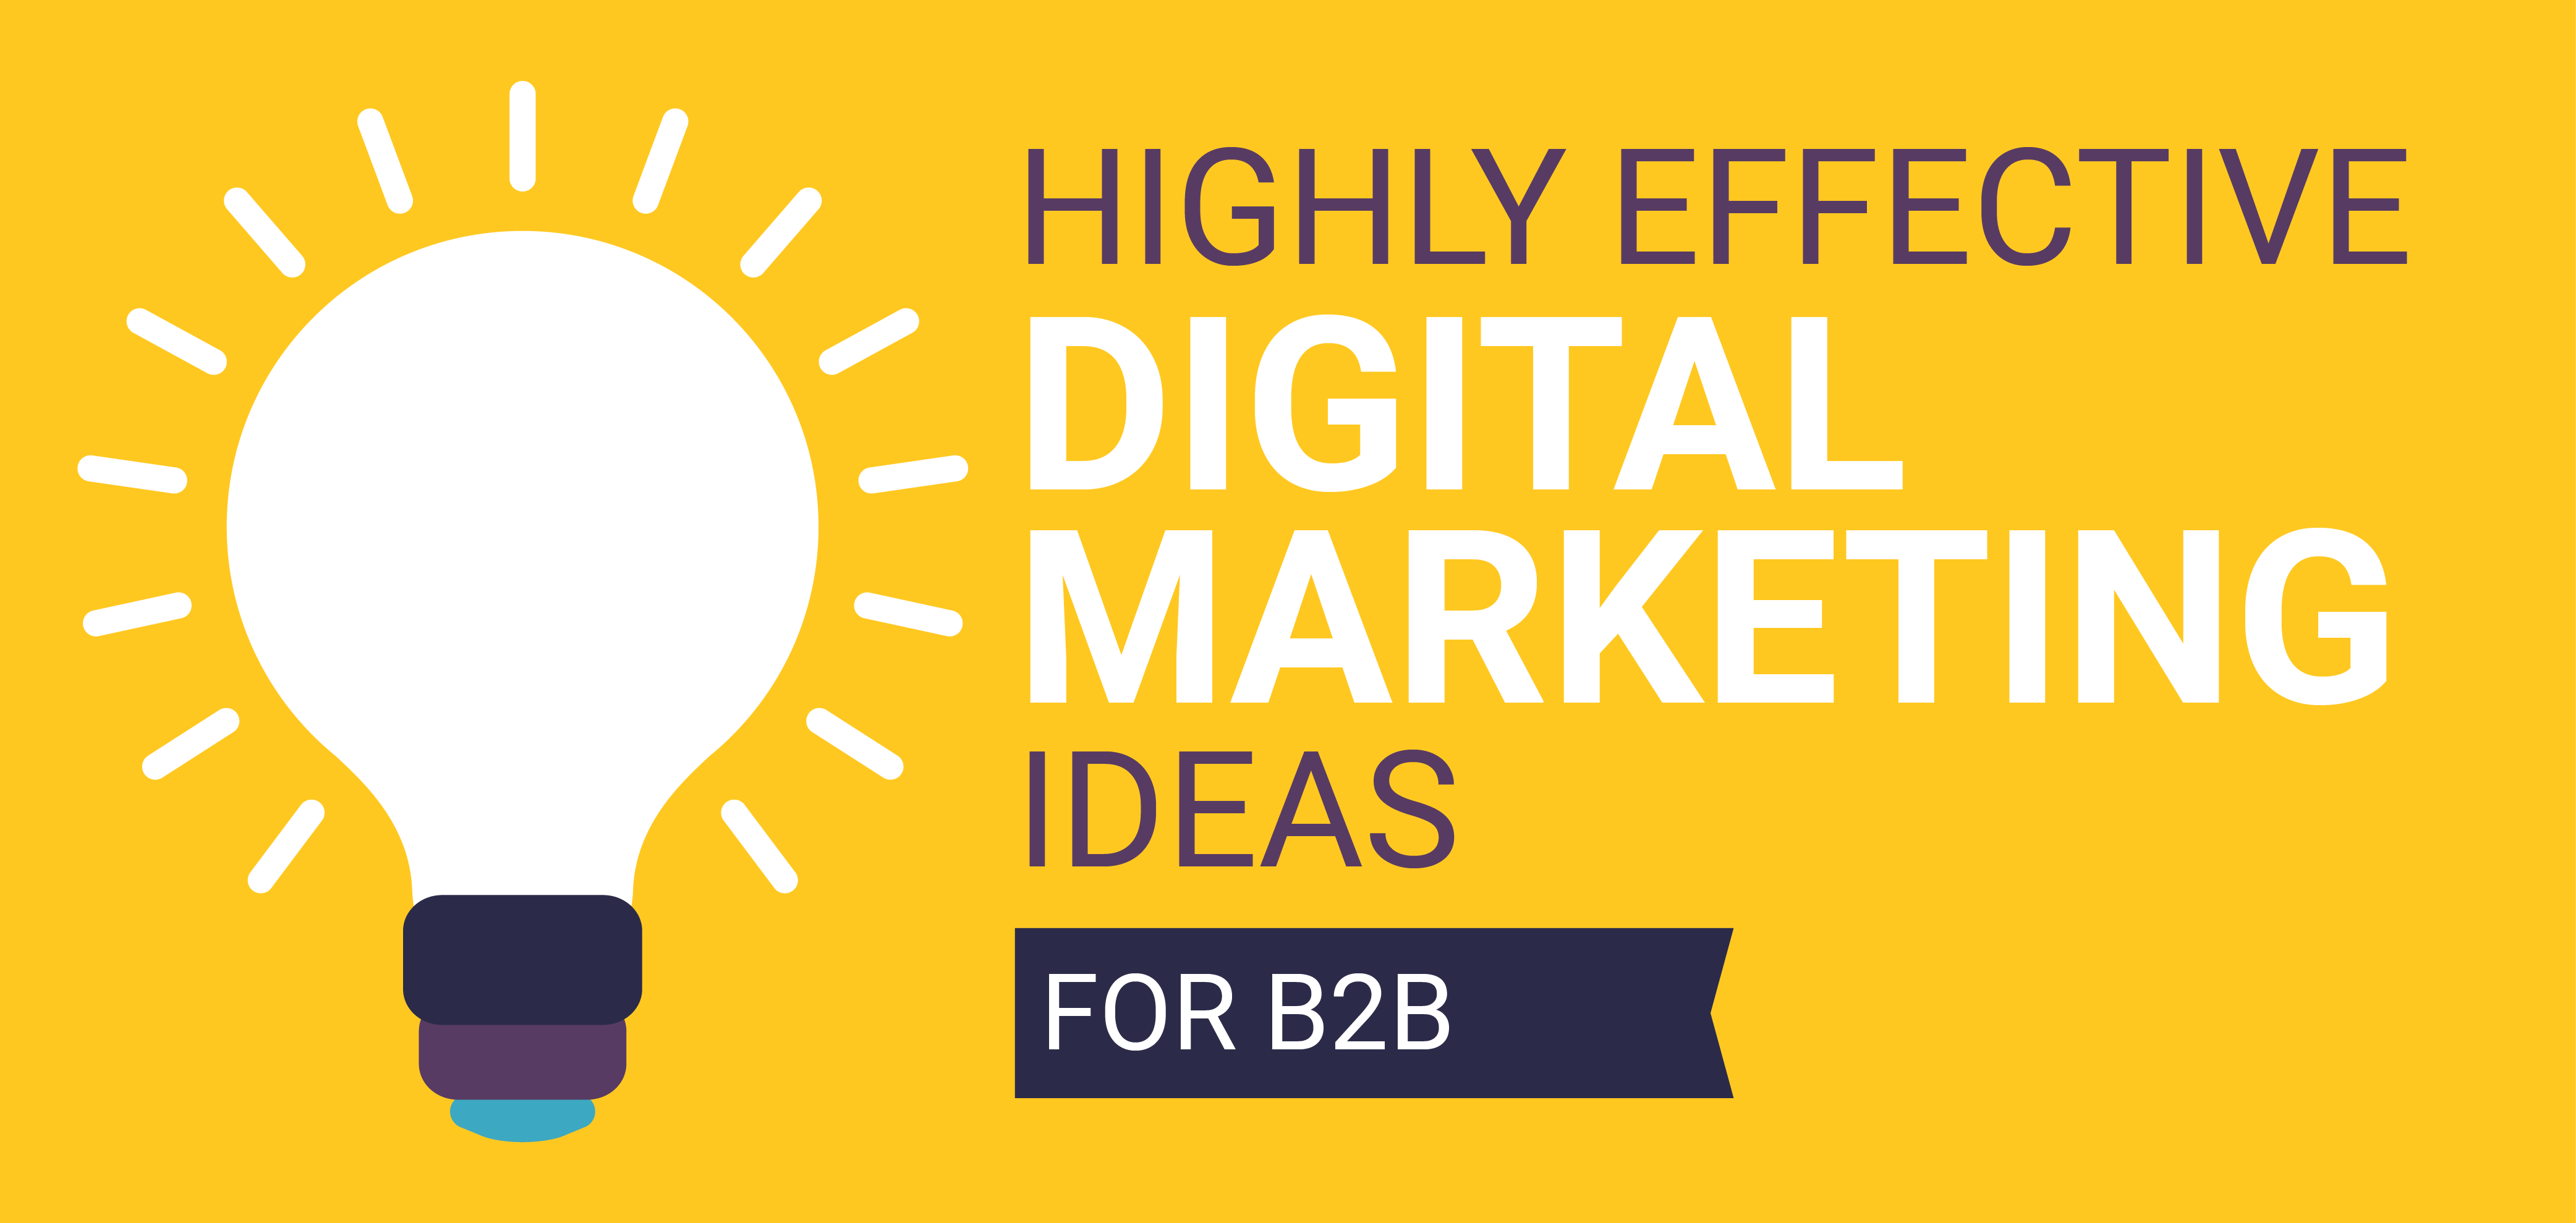 Highly-effective-digital-marketing-ideas-for-B2B